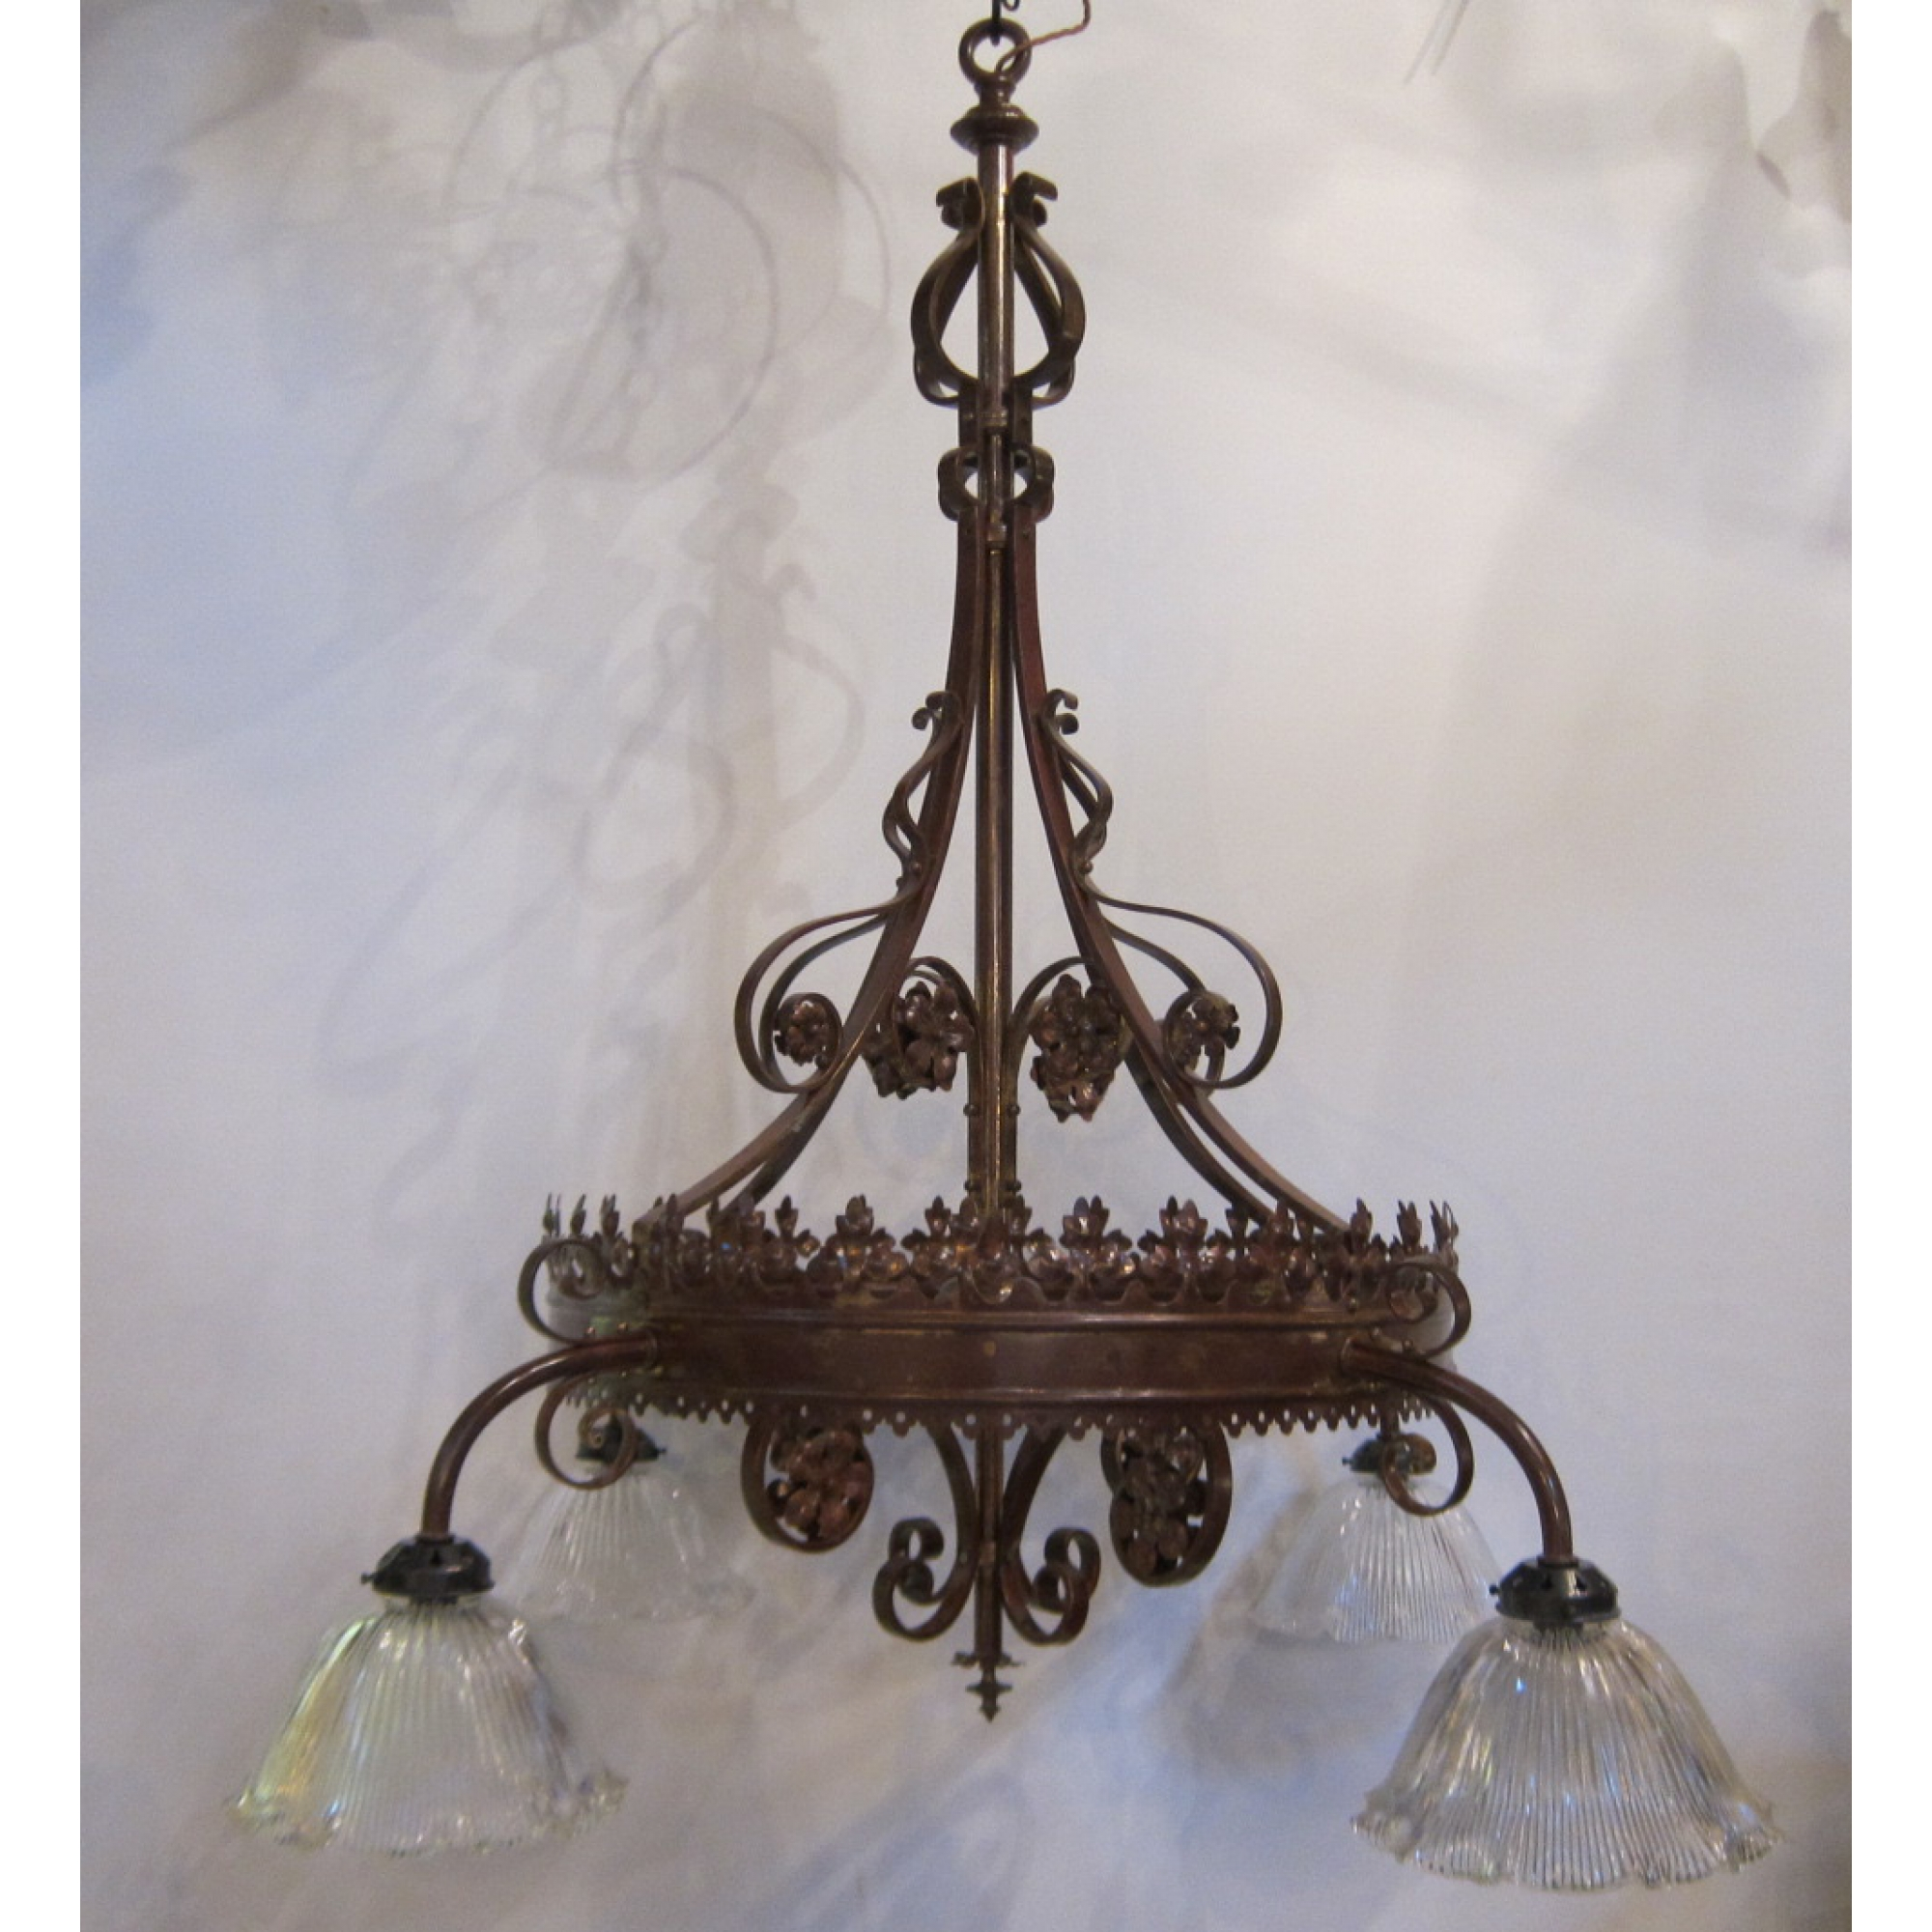 gothic ceiling lights photo - 1